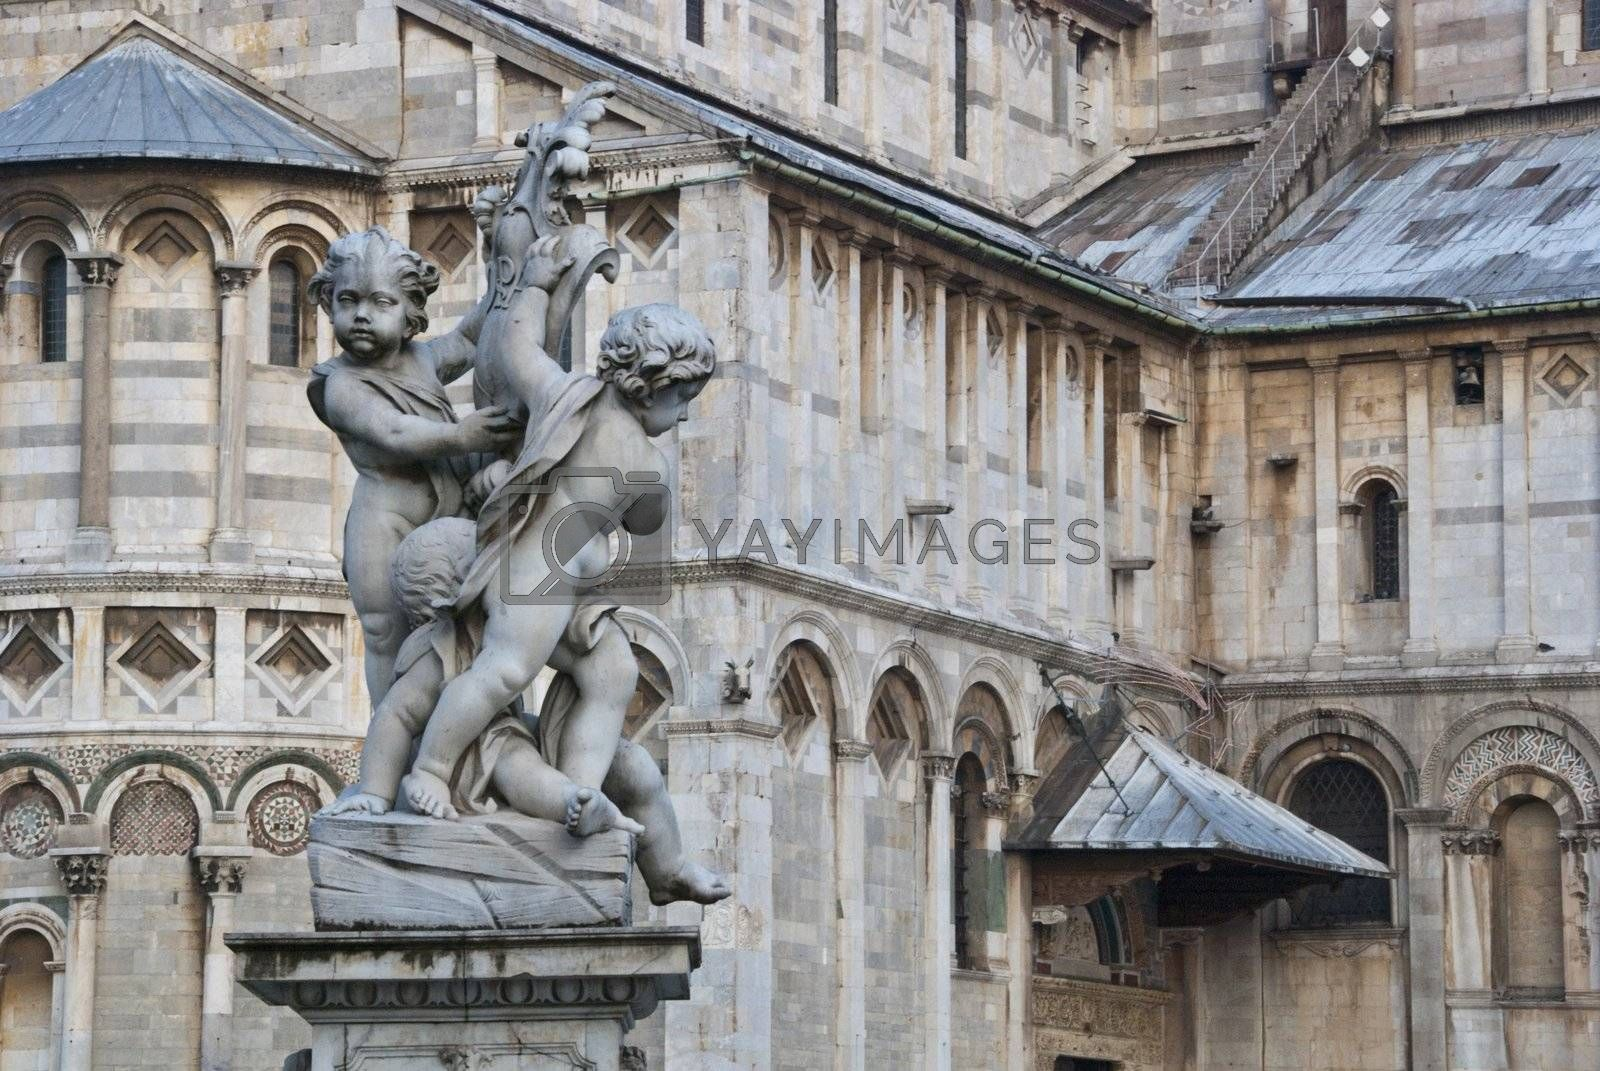 Architectural Detail of Piazza dei Miracoli, Pisa, Italy by jovannig